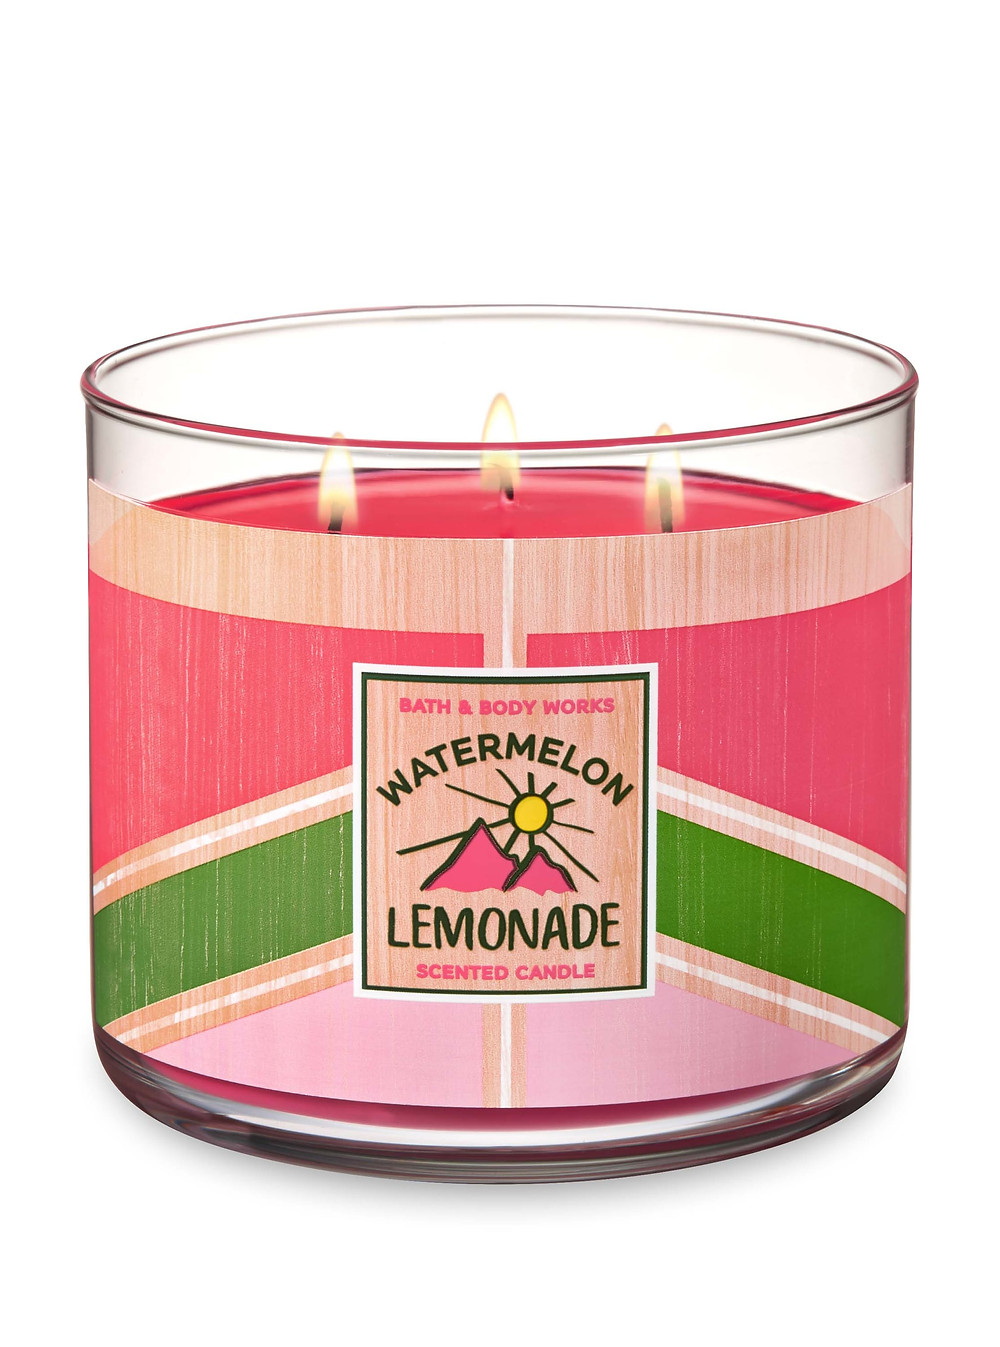 Bath & Body Works Watermelon Lemonade (3 Wick) Candle